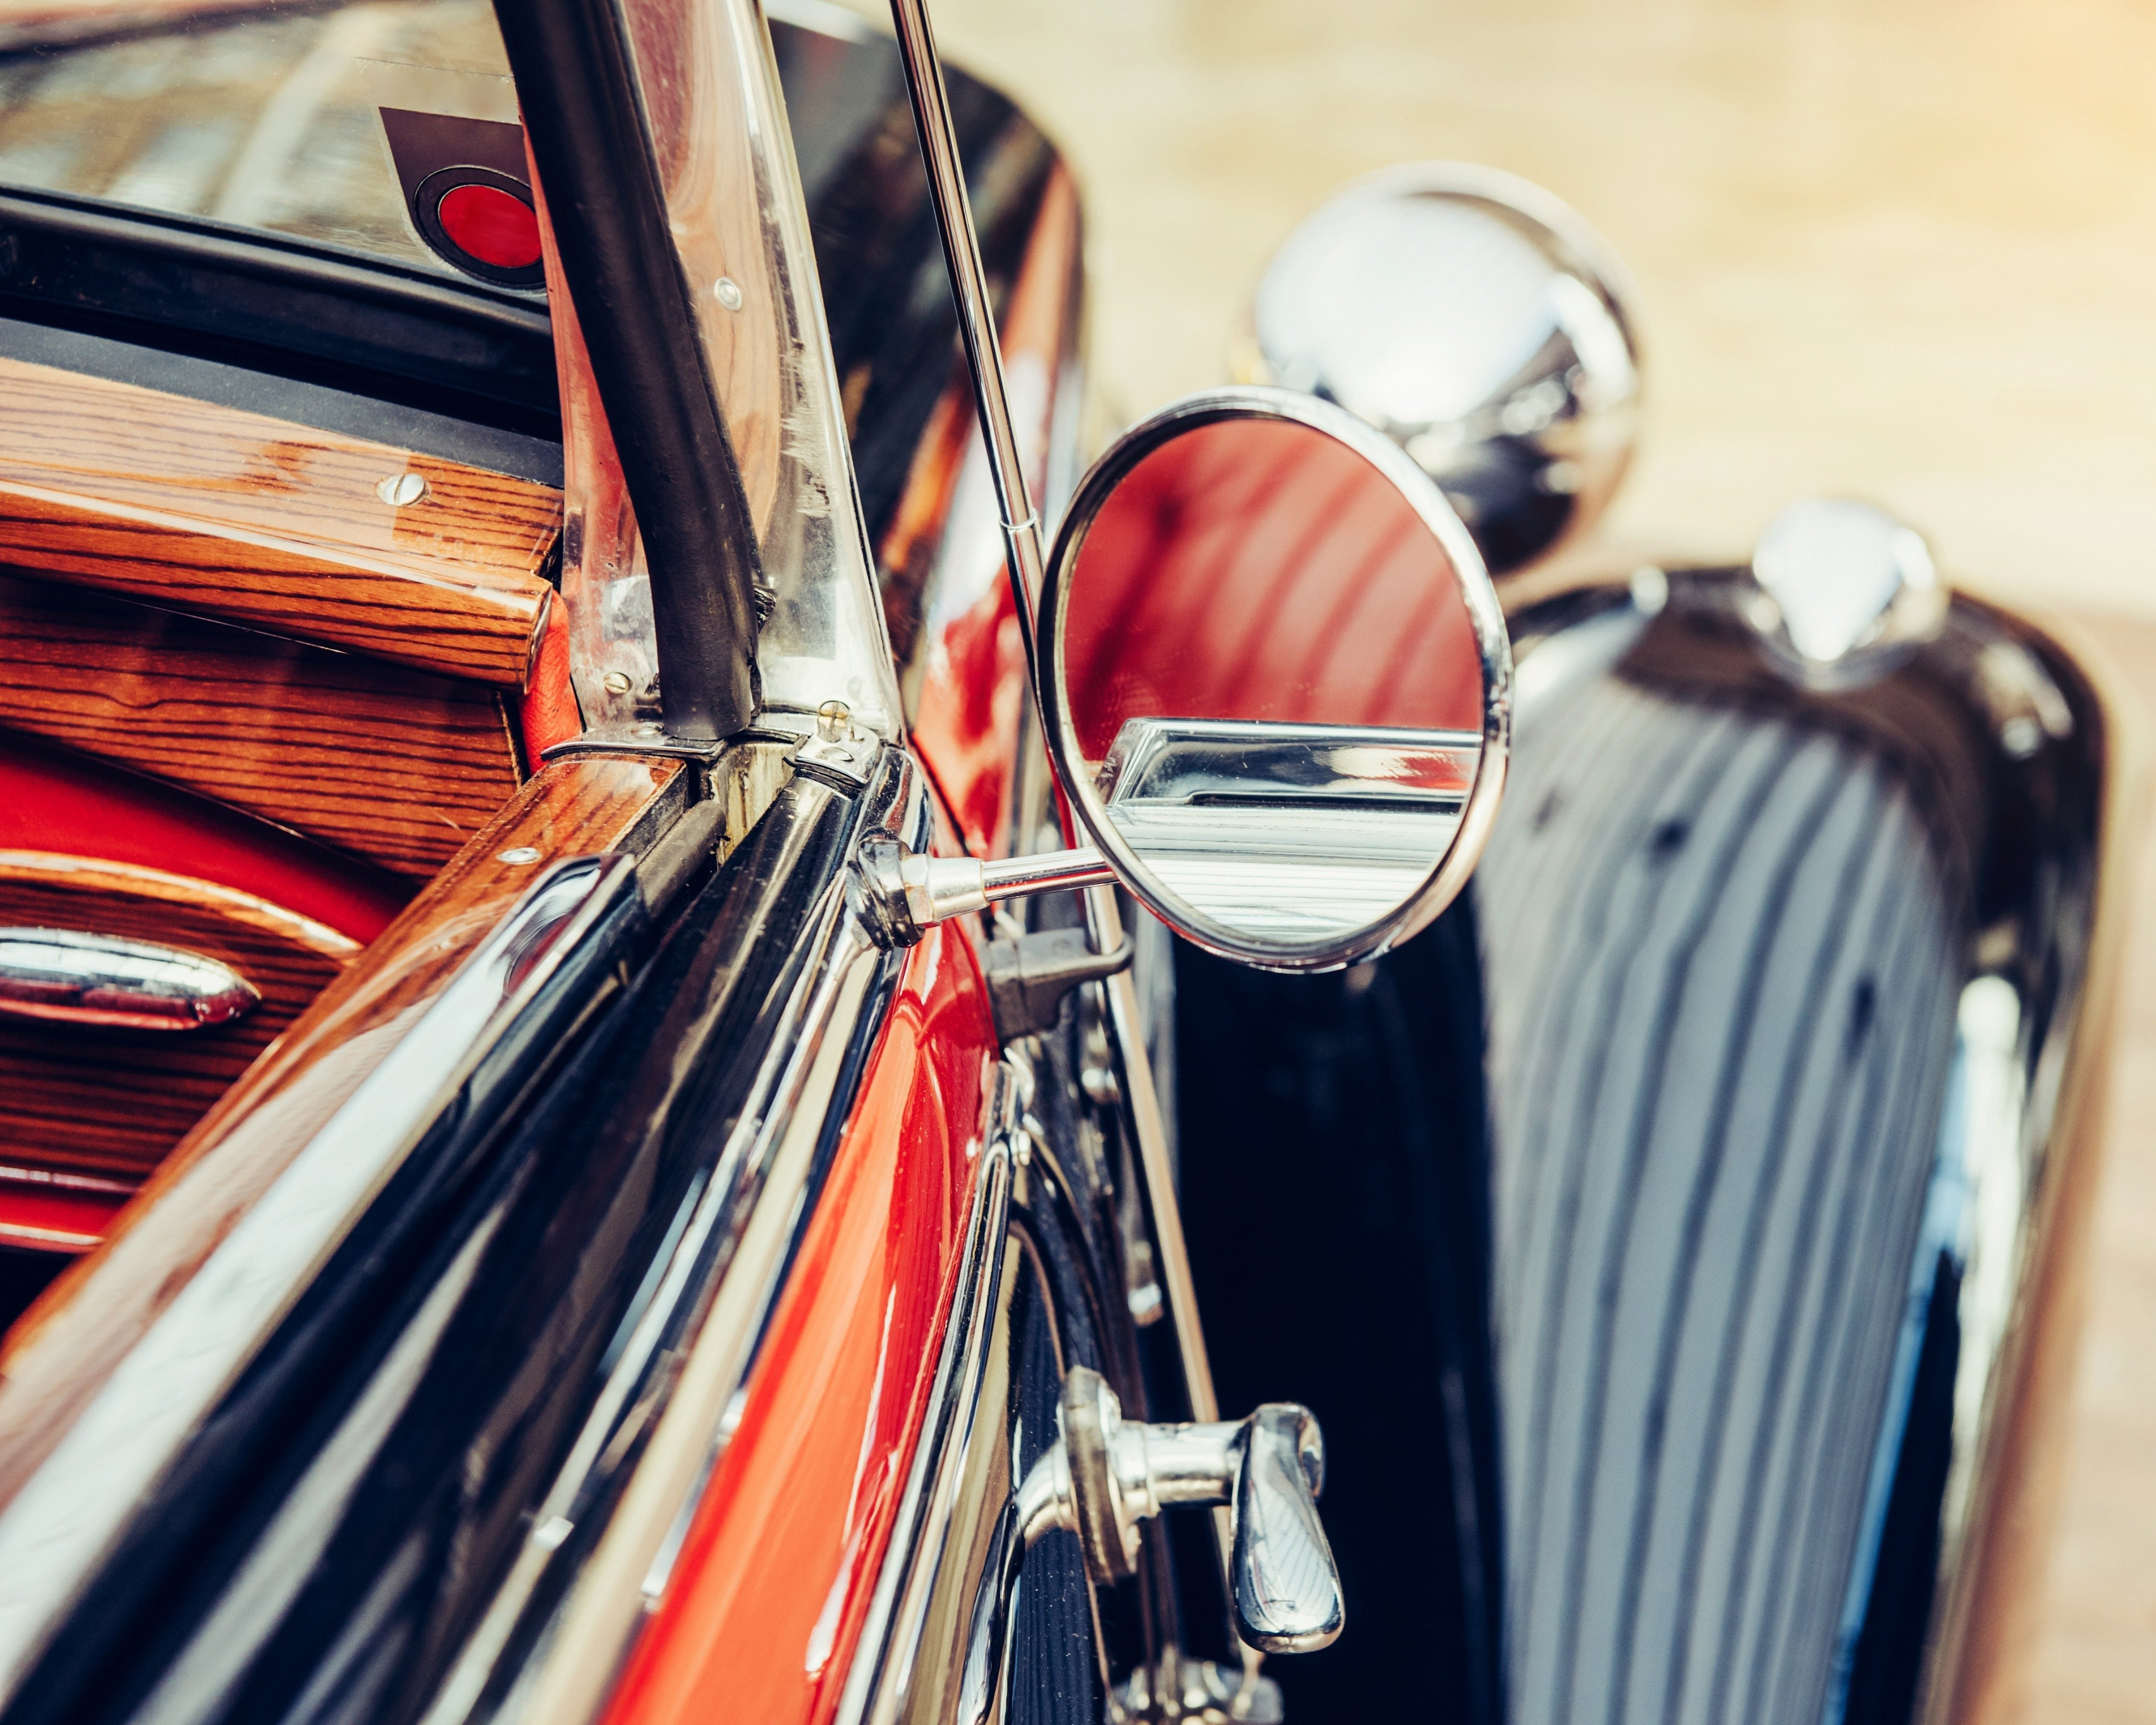 SEARCHING FOR CLASSIC CAR PARTS?